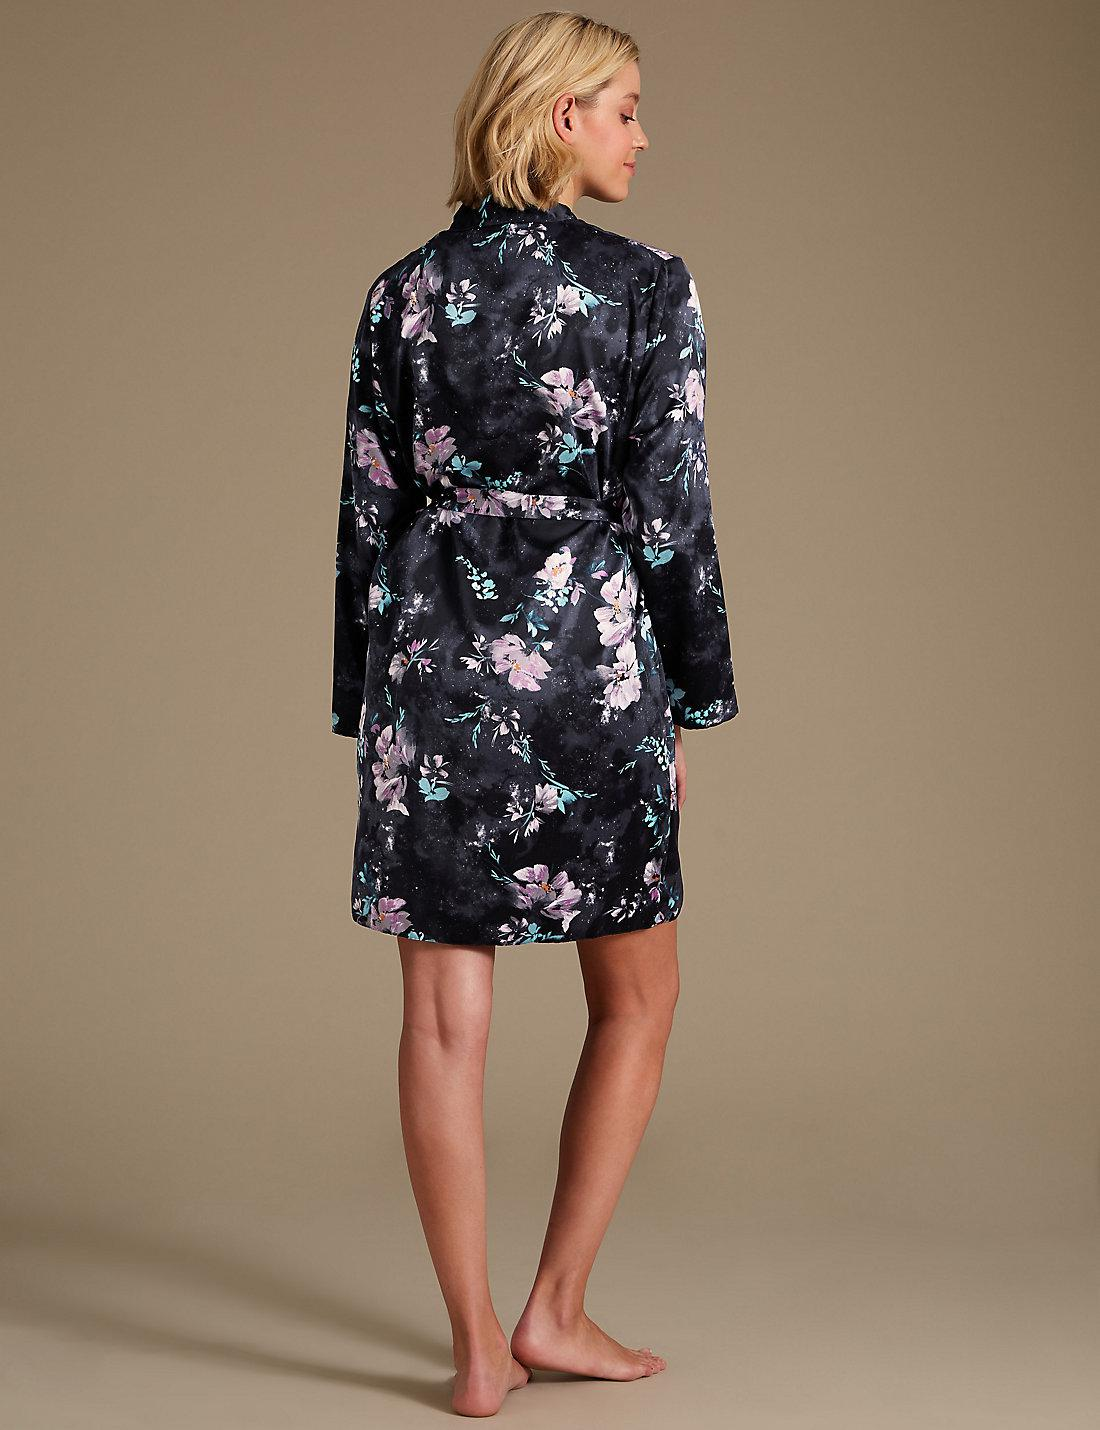 Lyst - Marks   Spencer Satin Floral Print Wrap Dressing Gown in Black 612a3b657247